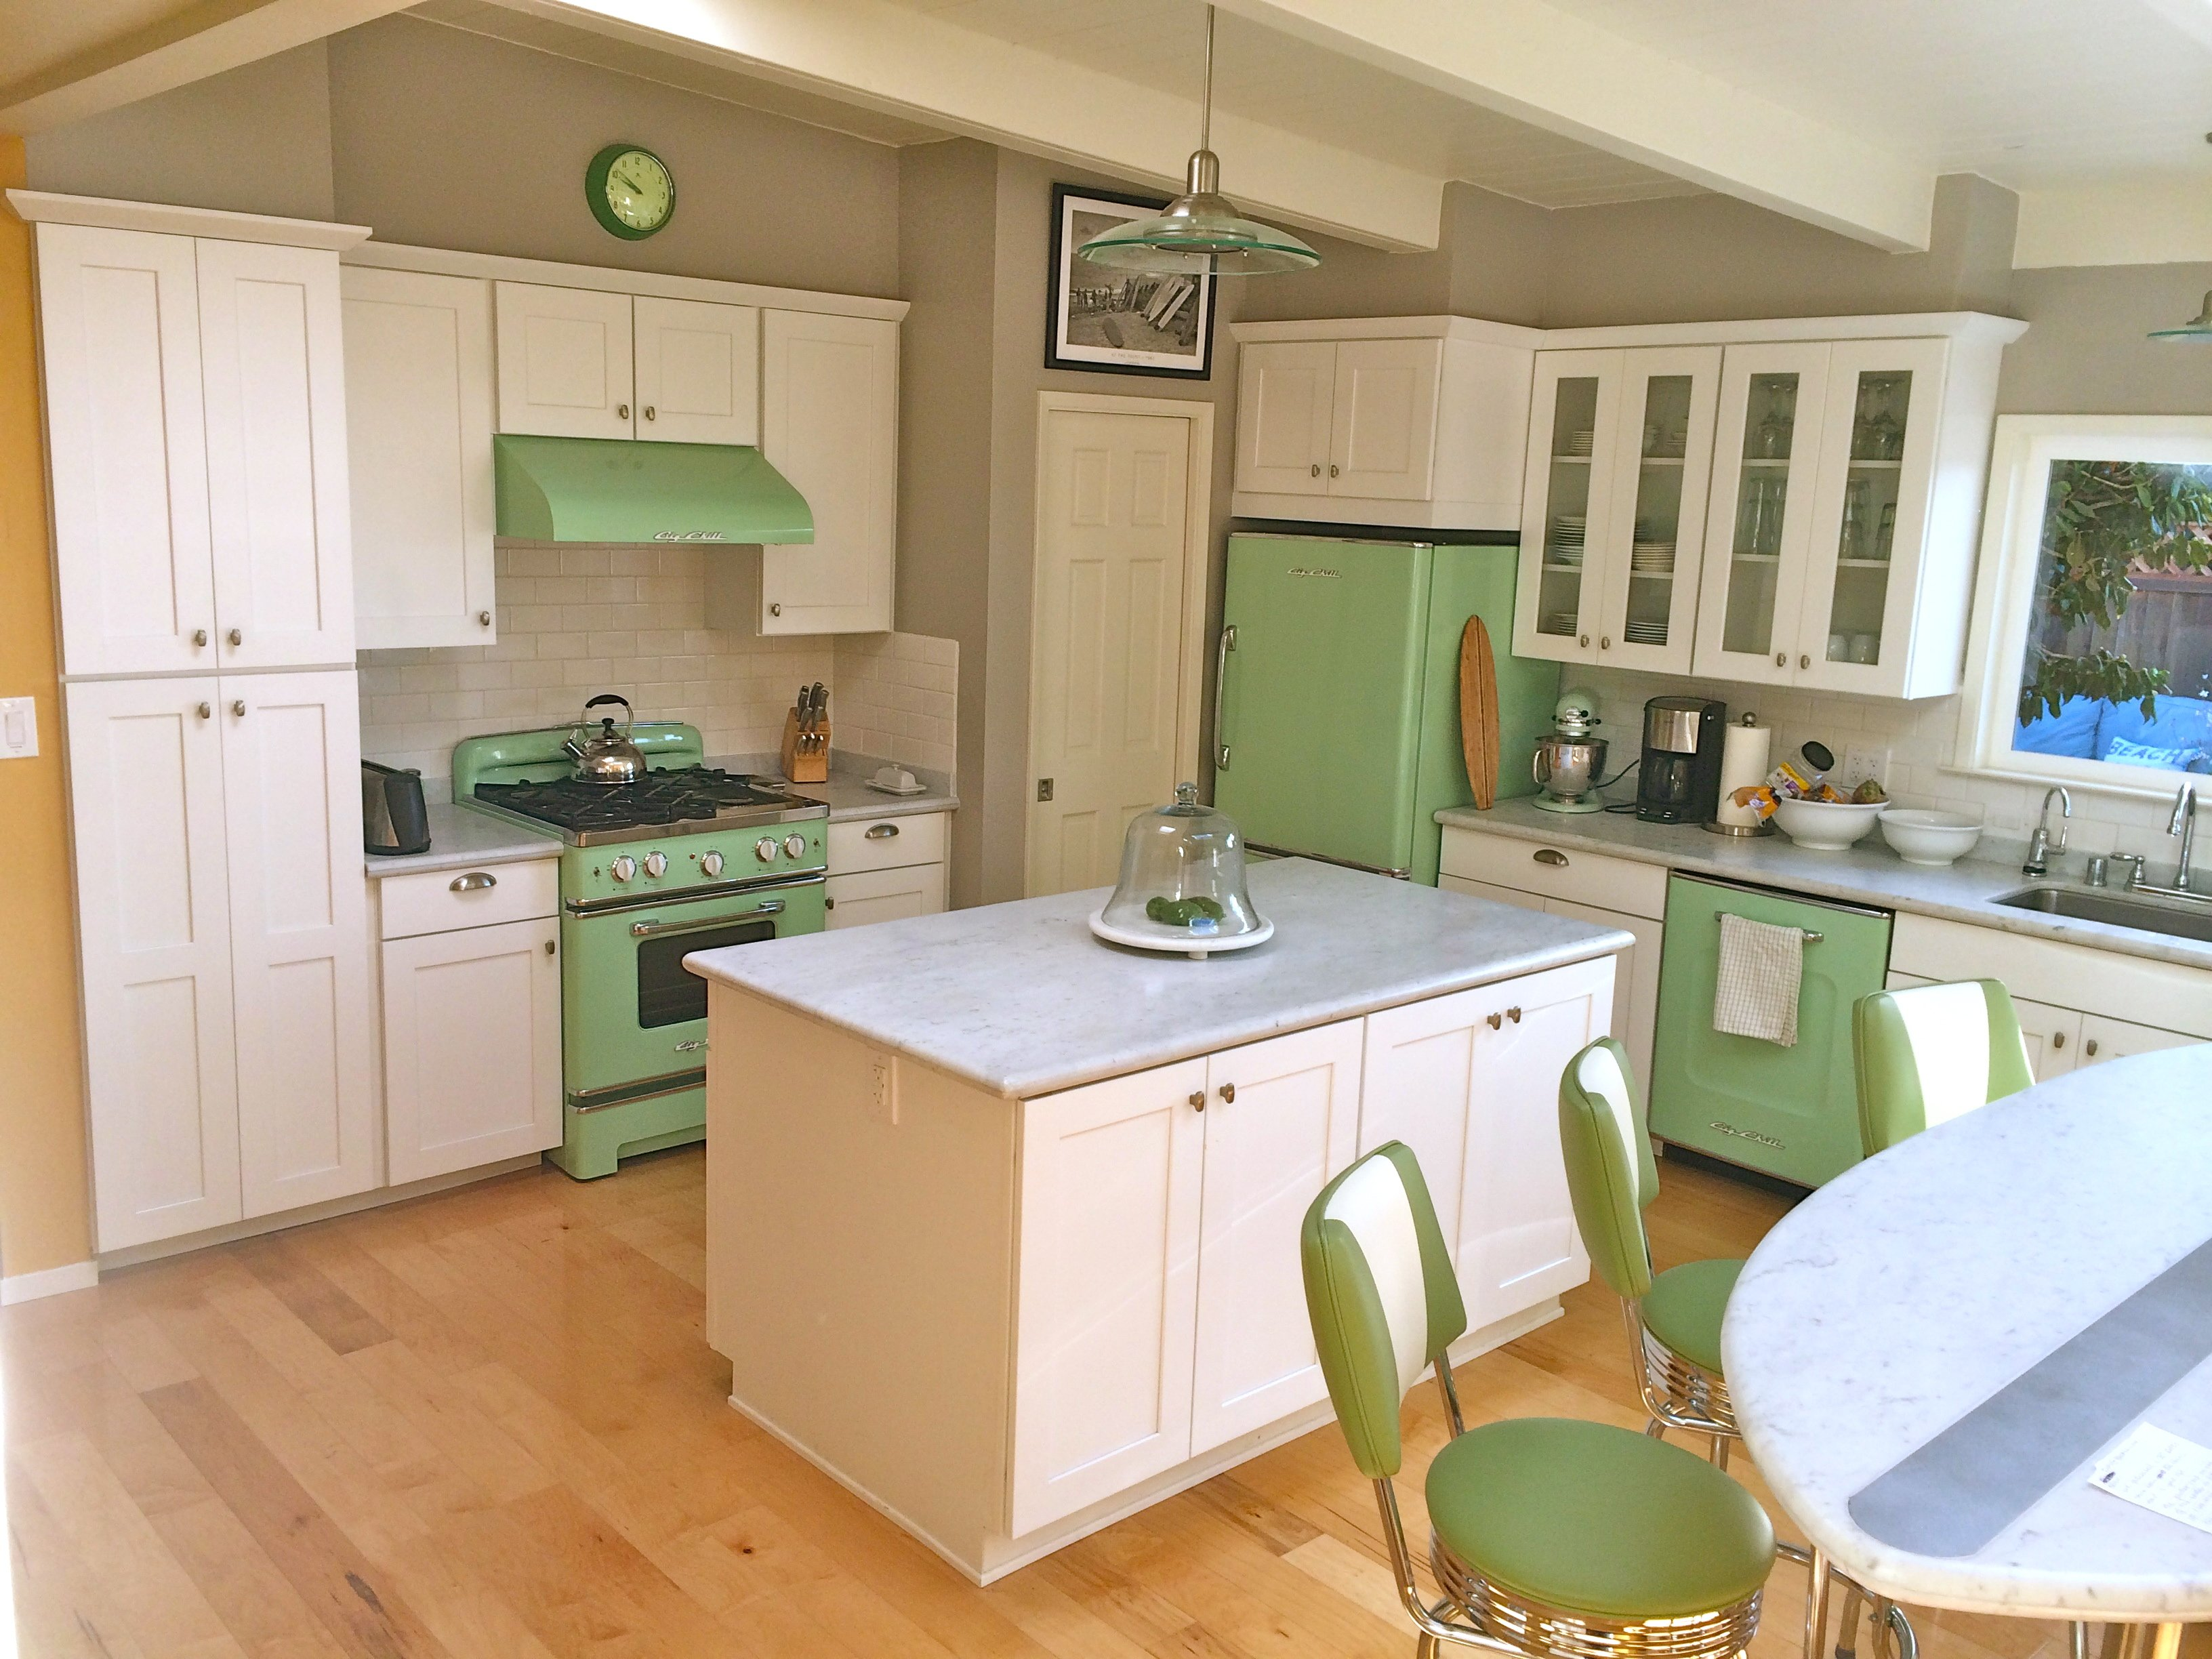 Uncategorized Elmira Appliances Kitchen retro appliances view all